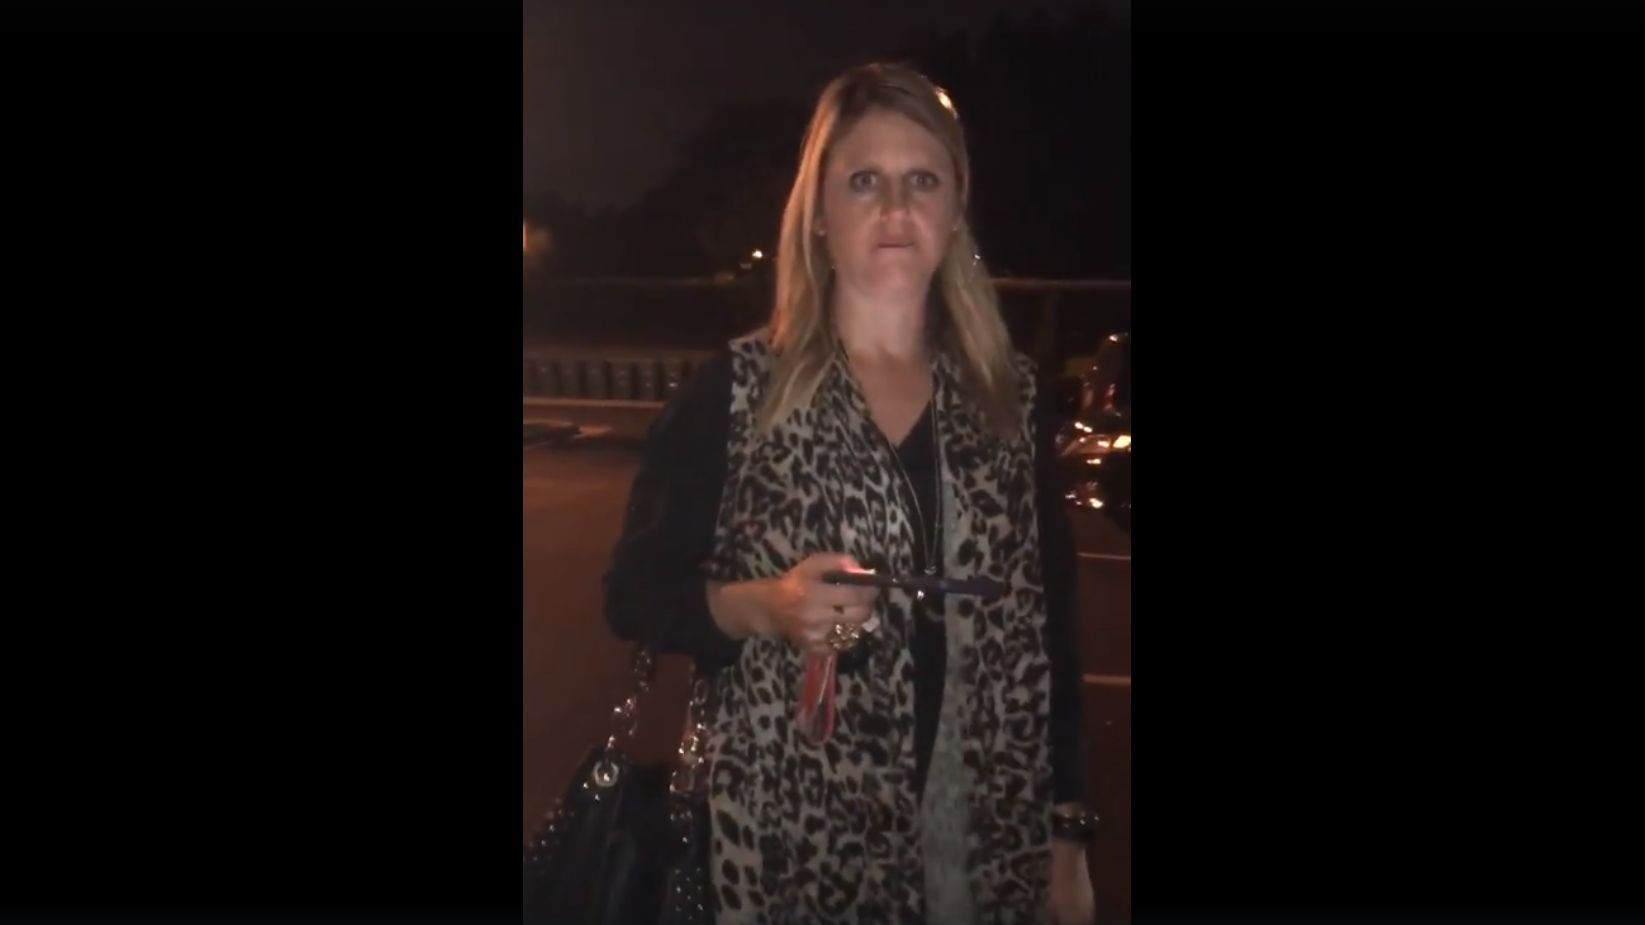 Charlotte woman at the center of 'viral racist rant' turns herself in